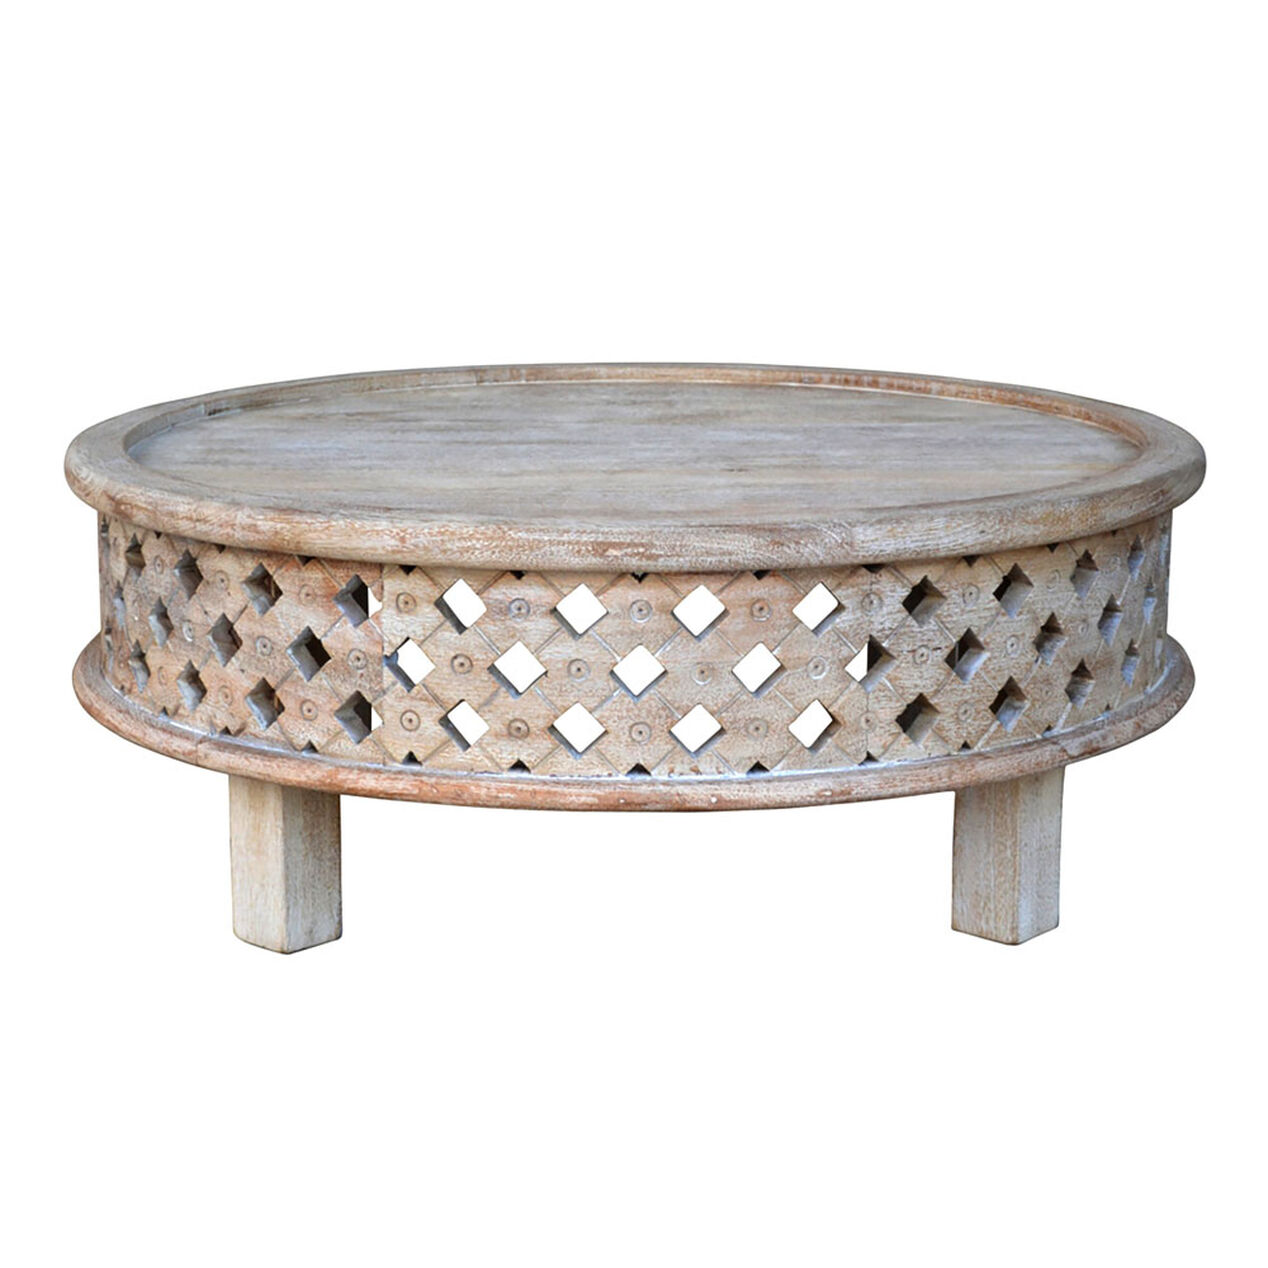 Mango wood coffee table with storage - Bargu Mango Wood Round Coffee Table